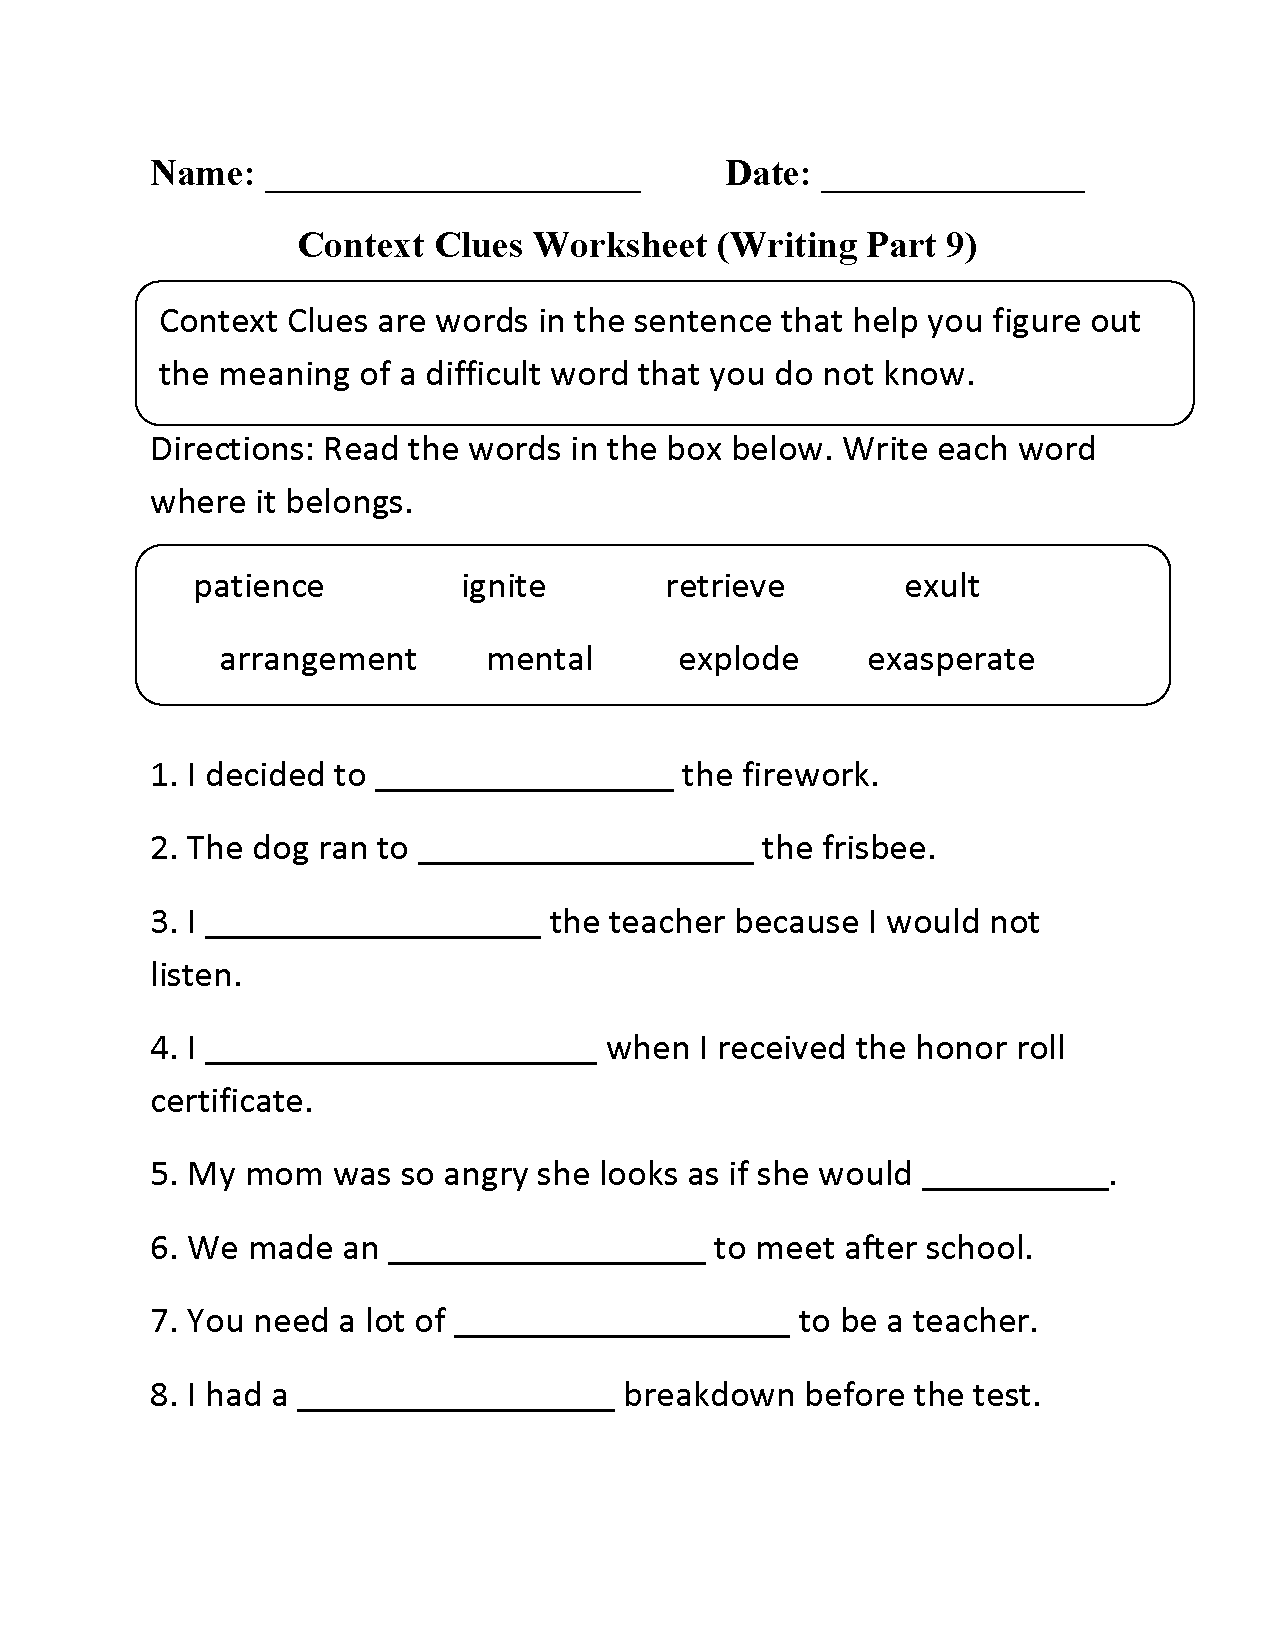 Worksheets Using Context Clues Worksheet englishlinx com context clues worksheets worksheet writing part 9 intermediate